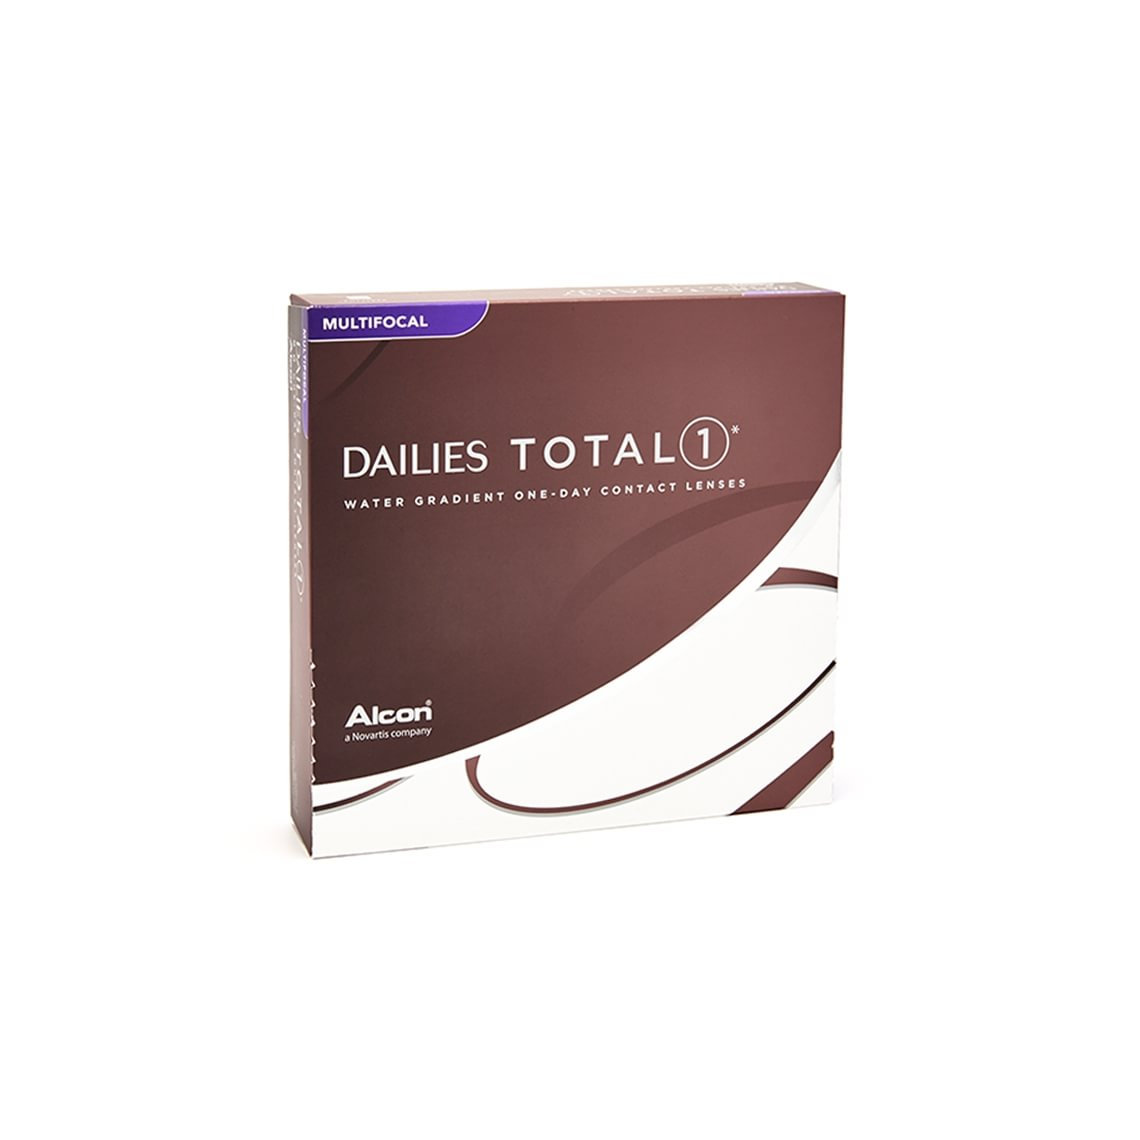 DAILIES Total 1 Multifocal 90 stk/pk